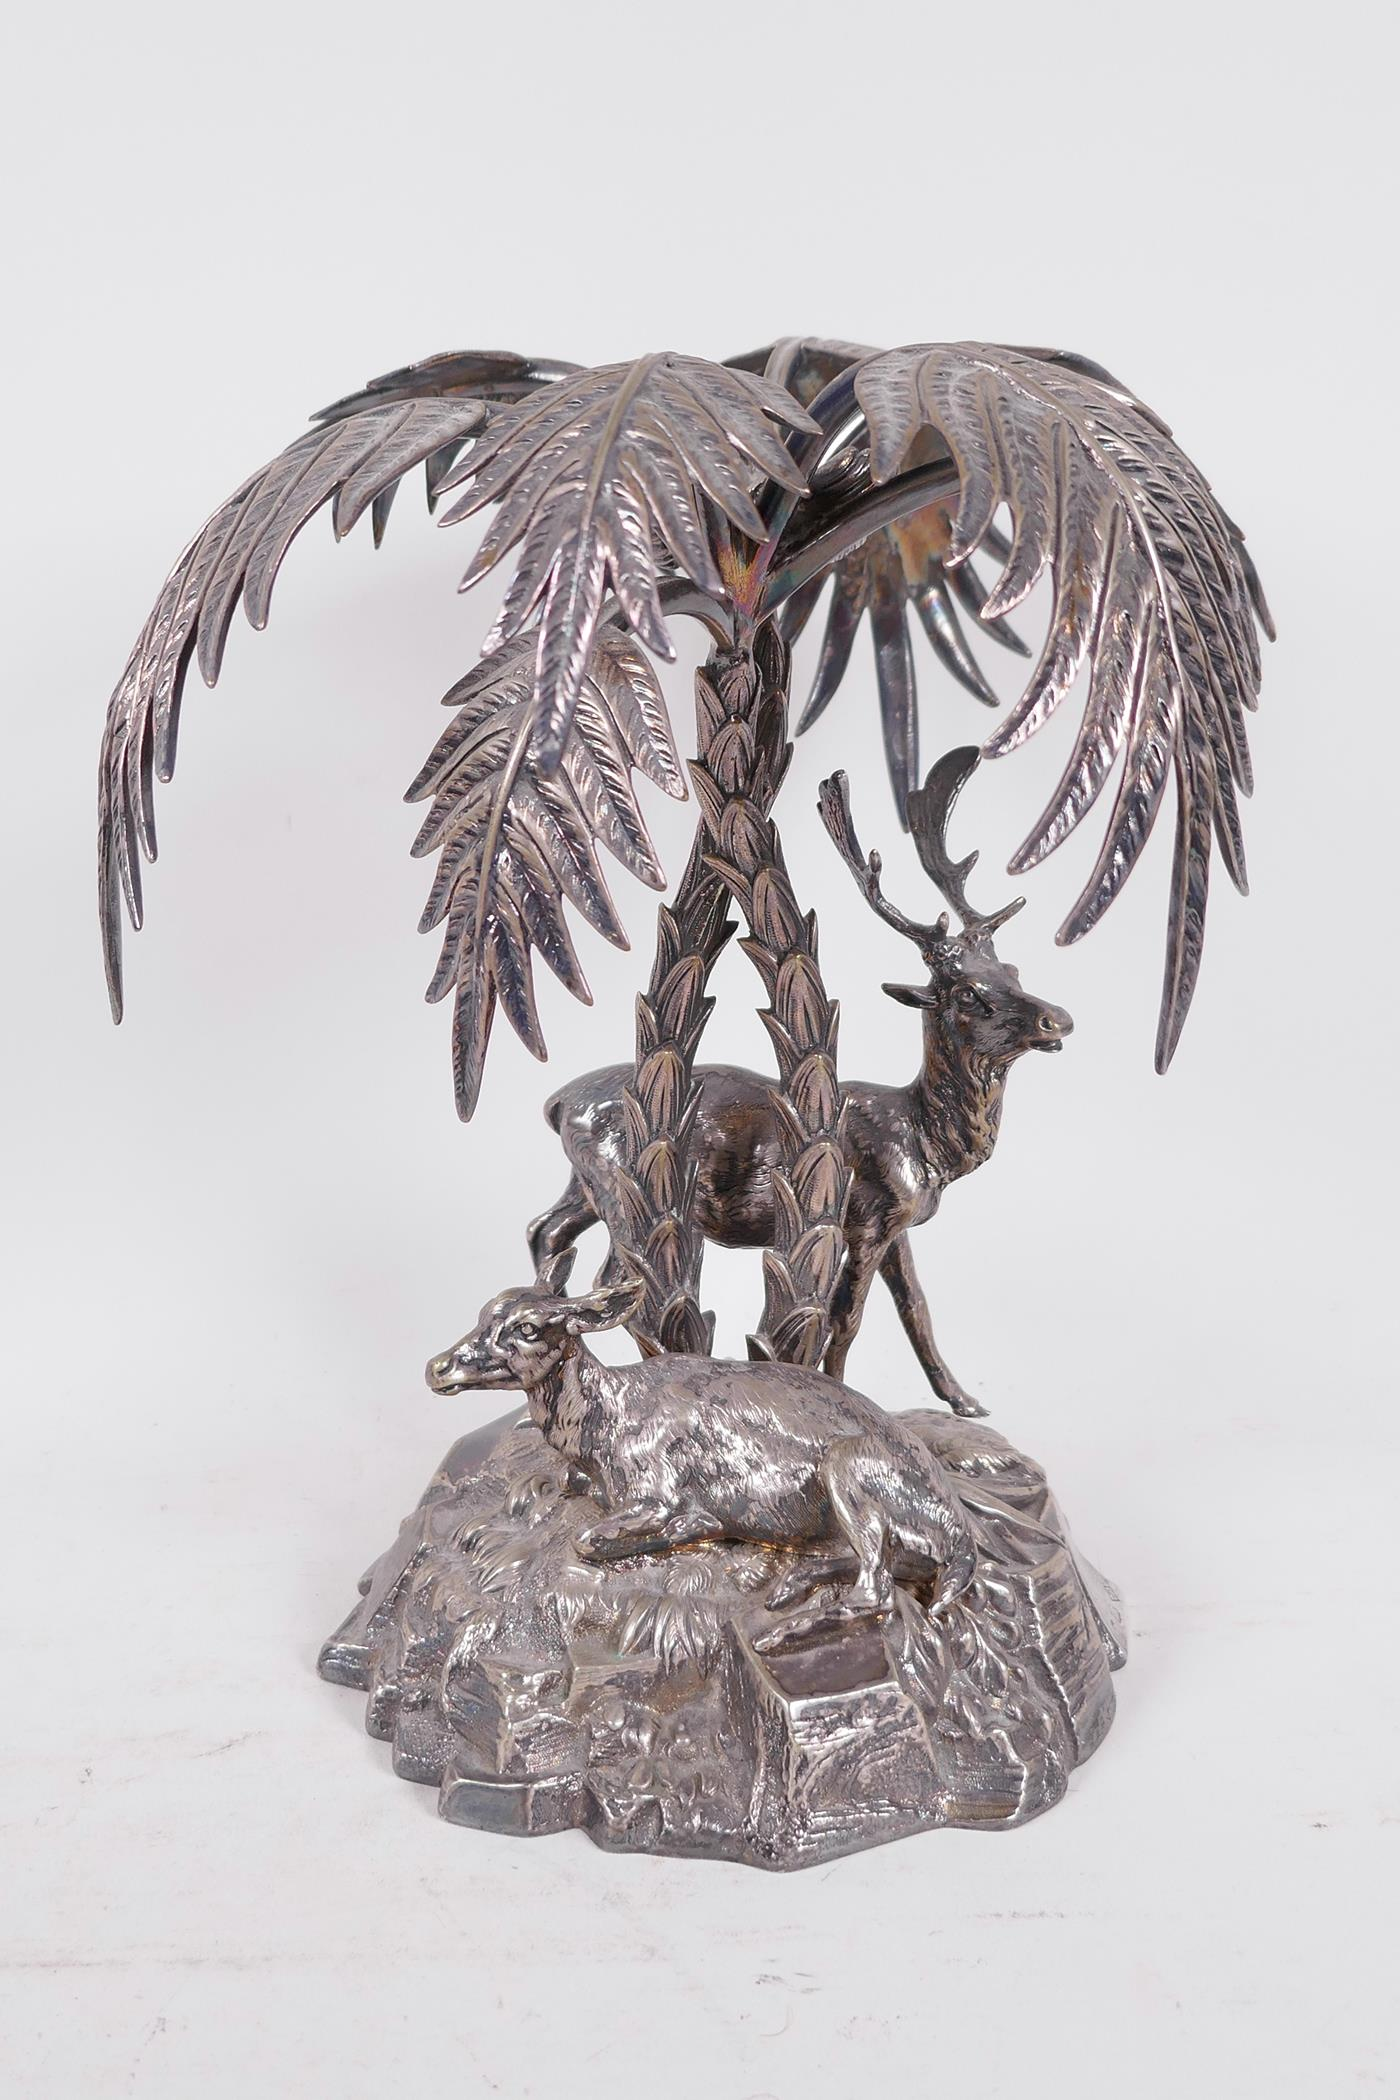 A C19th silver plated table centrepiece formed as deer under a palm tree by Thomas Bradbury and